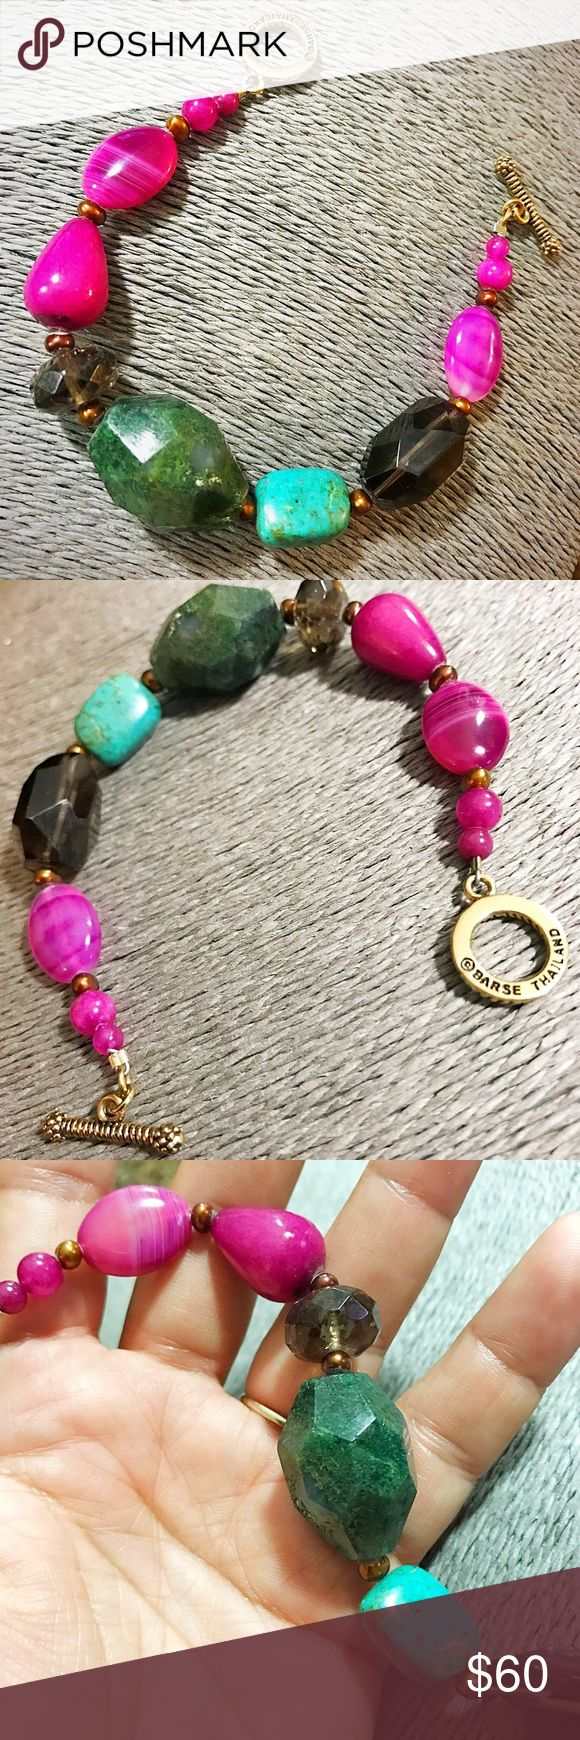 """Barse Genuine Gemstone Chunky Bracelet Excellent conditions. About 8"""". Authentic Barse jewelry piece. High quality. Genuine Gemstones. Barse Jewelry Bracelets"""